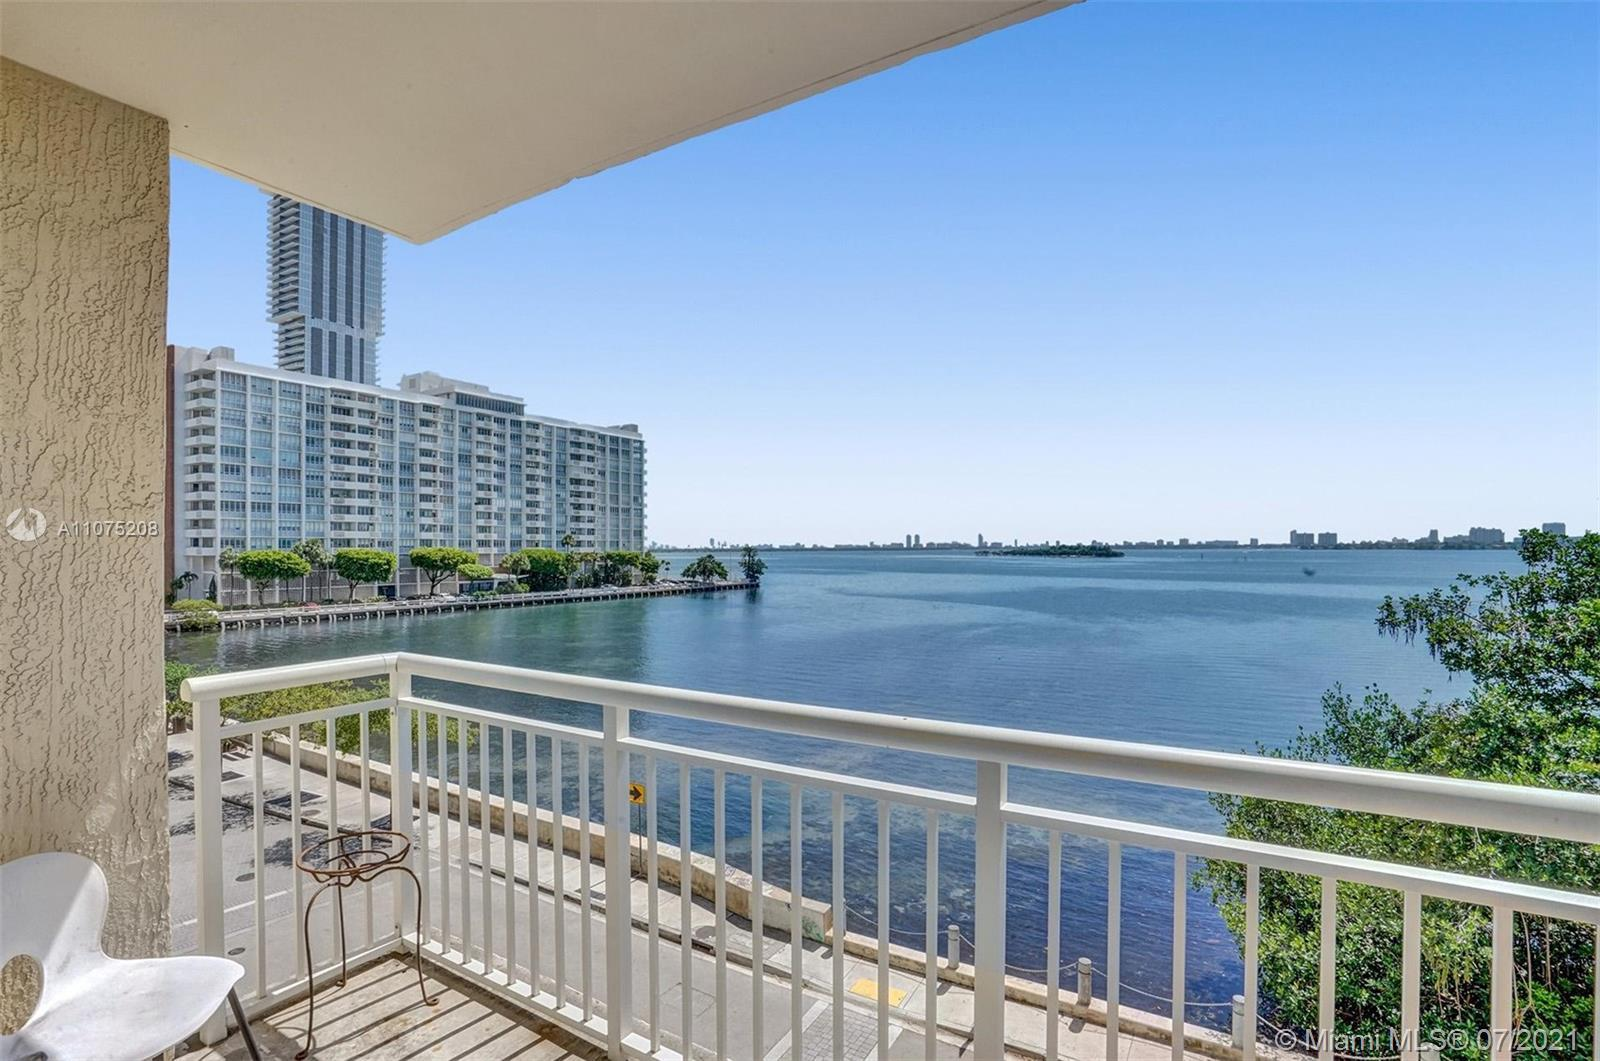 Gorgeous 3 bedroom 2 bathroom unit with 2 balconies and 2 parking spaces! Enjoy breathtaking views o